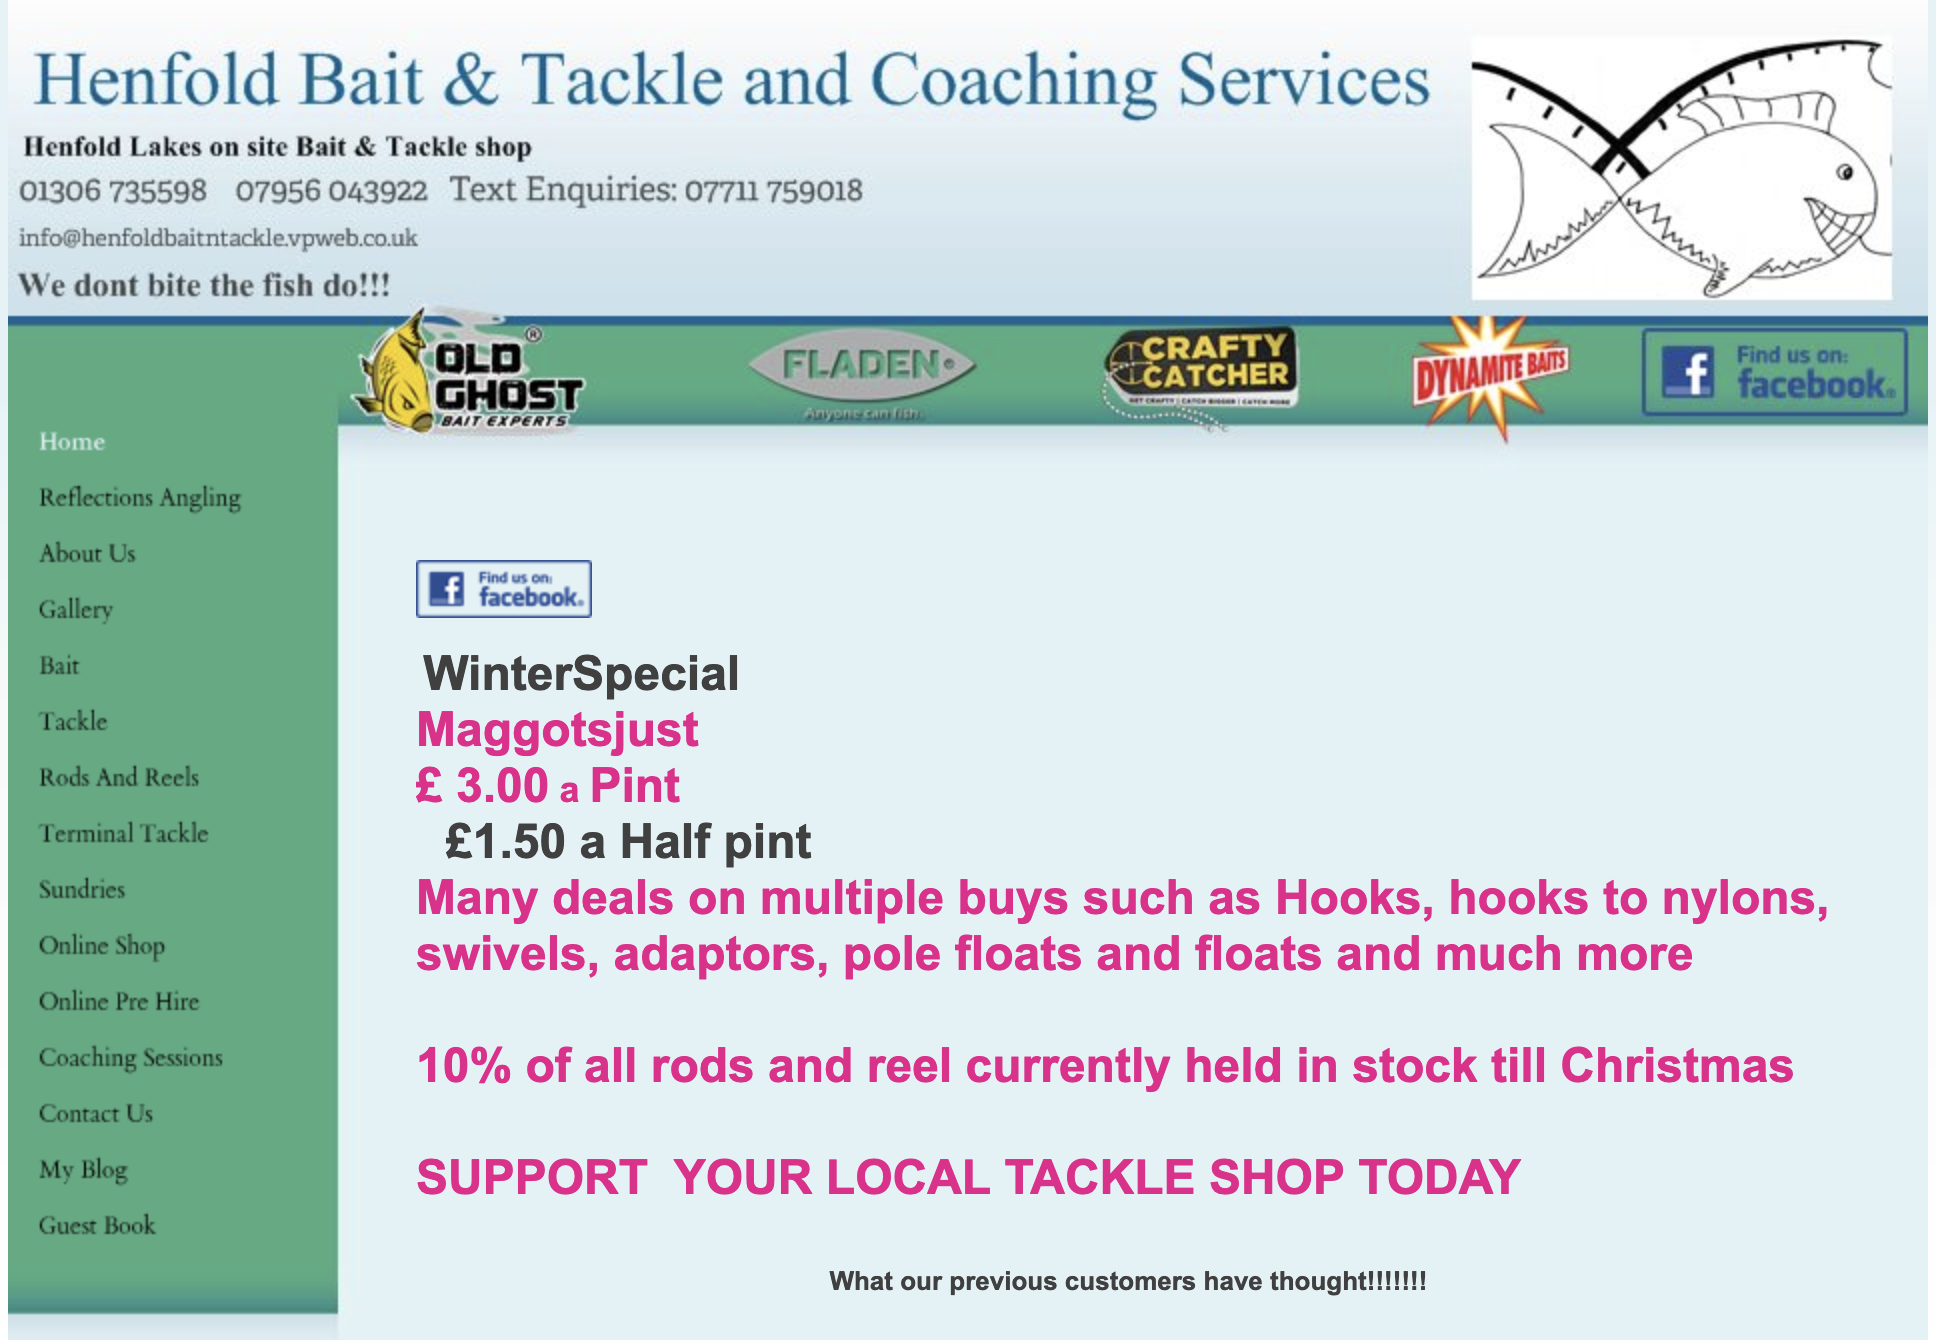 Henfold Bait and Tackle